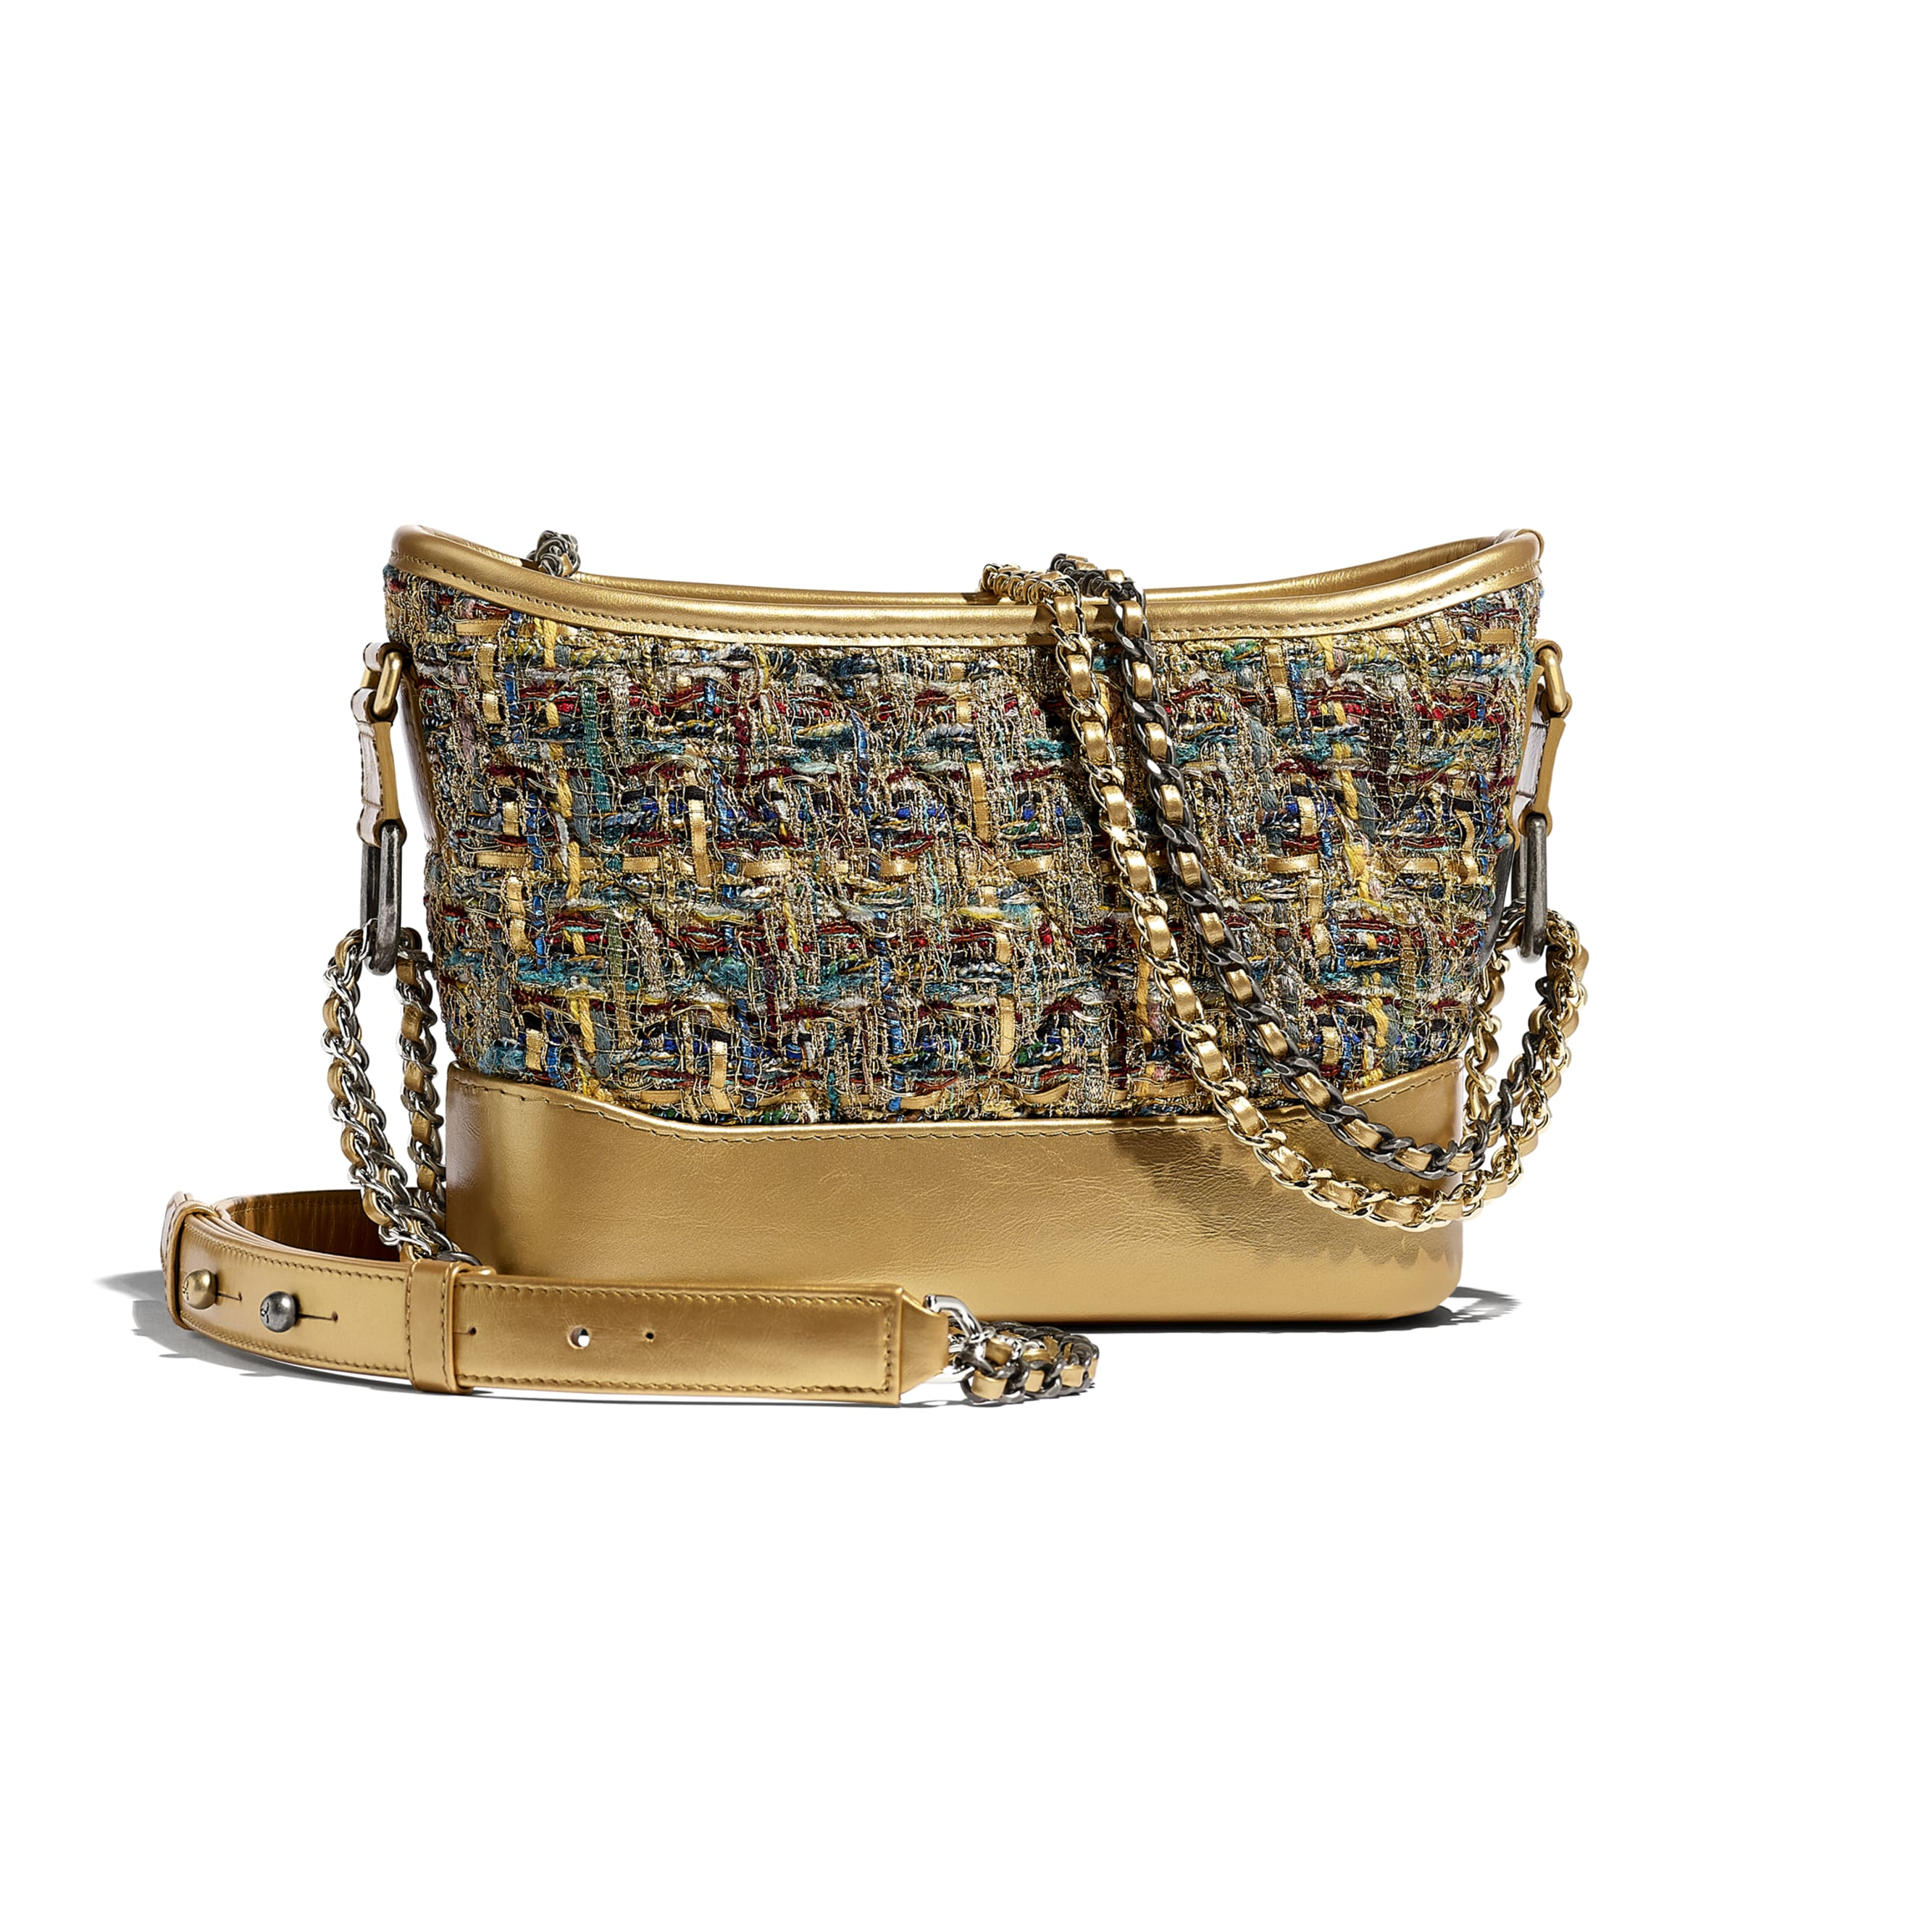 CHANEL'S GABRIELLE Small Hobo Bag - Gold, Blue & Green - Tweed, Calfskin, Gold-Tone & Silver-Tone Metal - Alternative view - see standard sized version